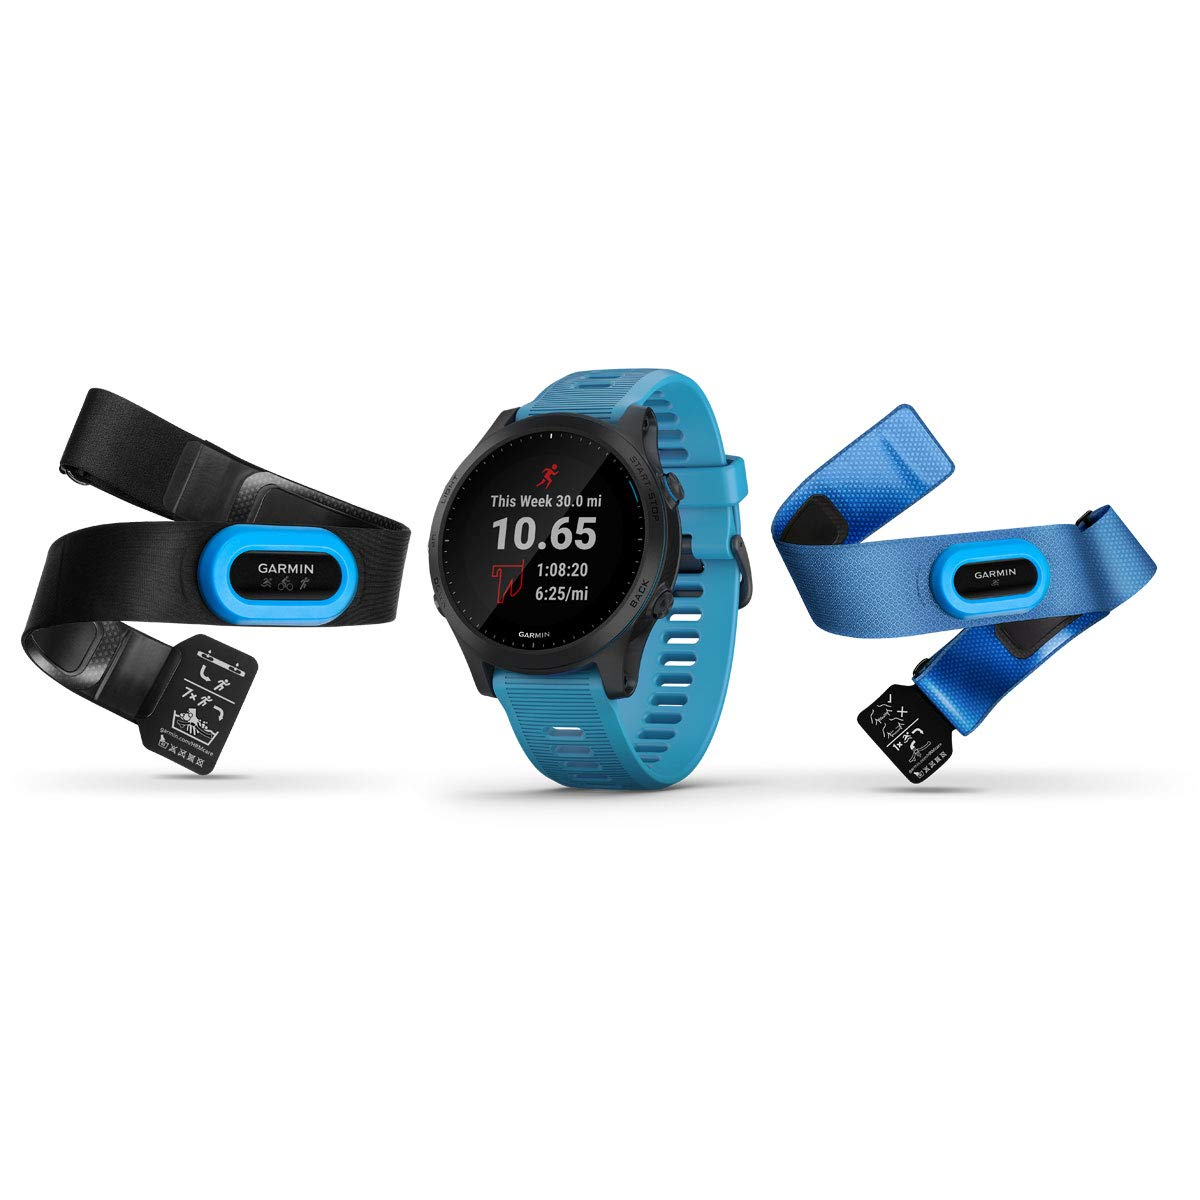 Garmin - Reloj GPS Forerunner 945 Pack Triatlon Garmin: Amazon.es: Electrónica